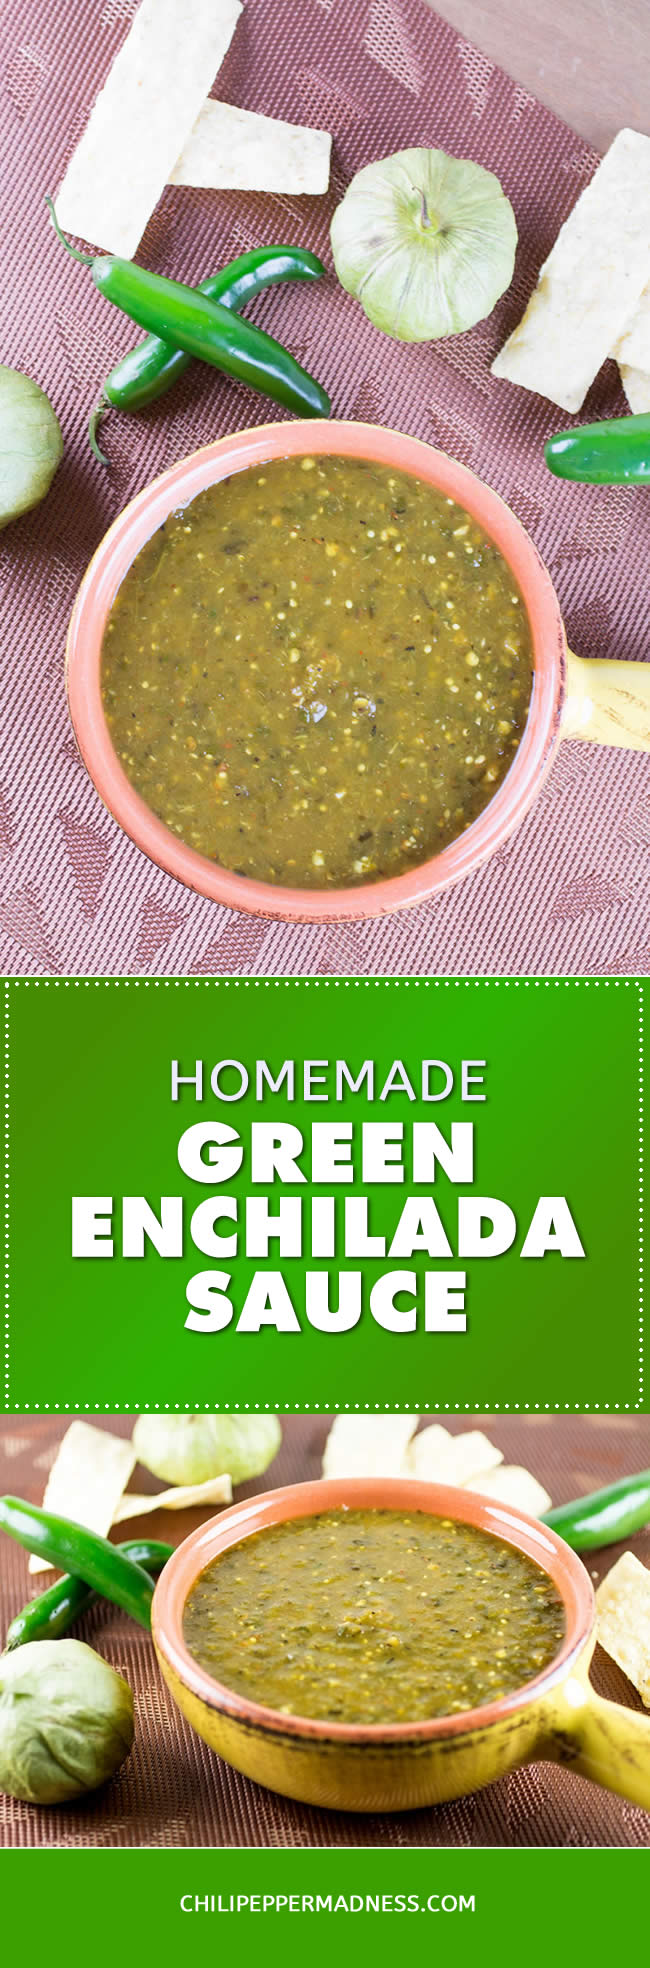 Homemade Green Enchilada Sauce with Roasted Tomatillos - Recipe | ChiliPepperMadness.com